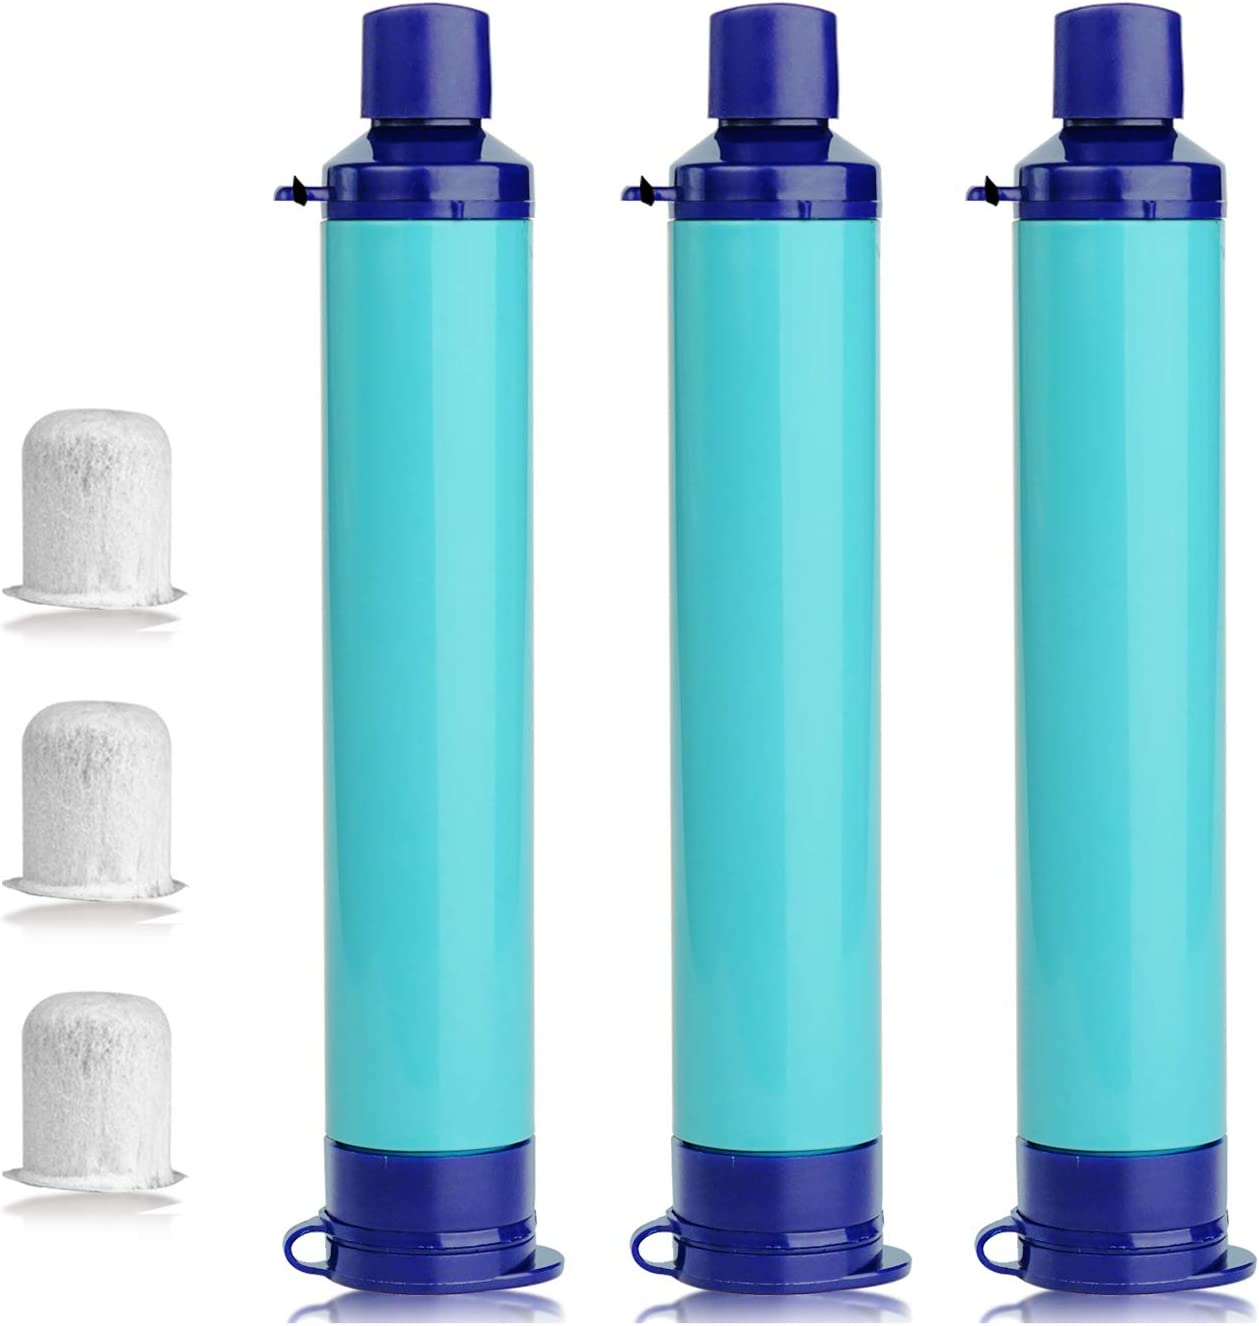 SimPure Water Filter Straw Purifier Survival for Travel, Hiking, Camping, Emergency